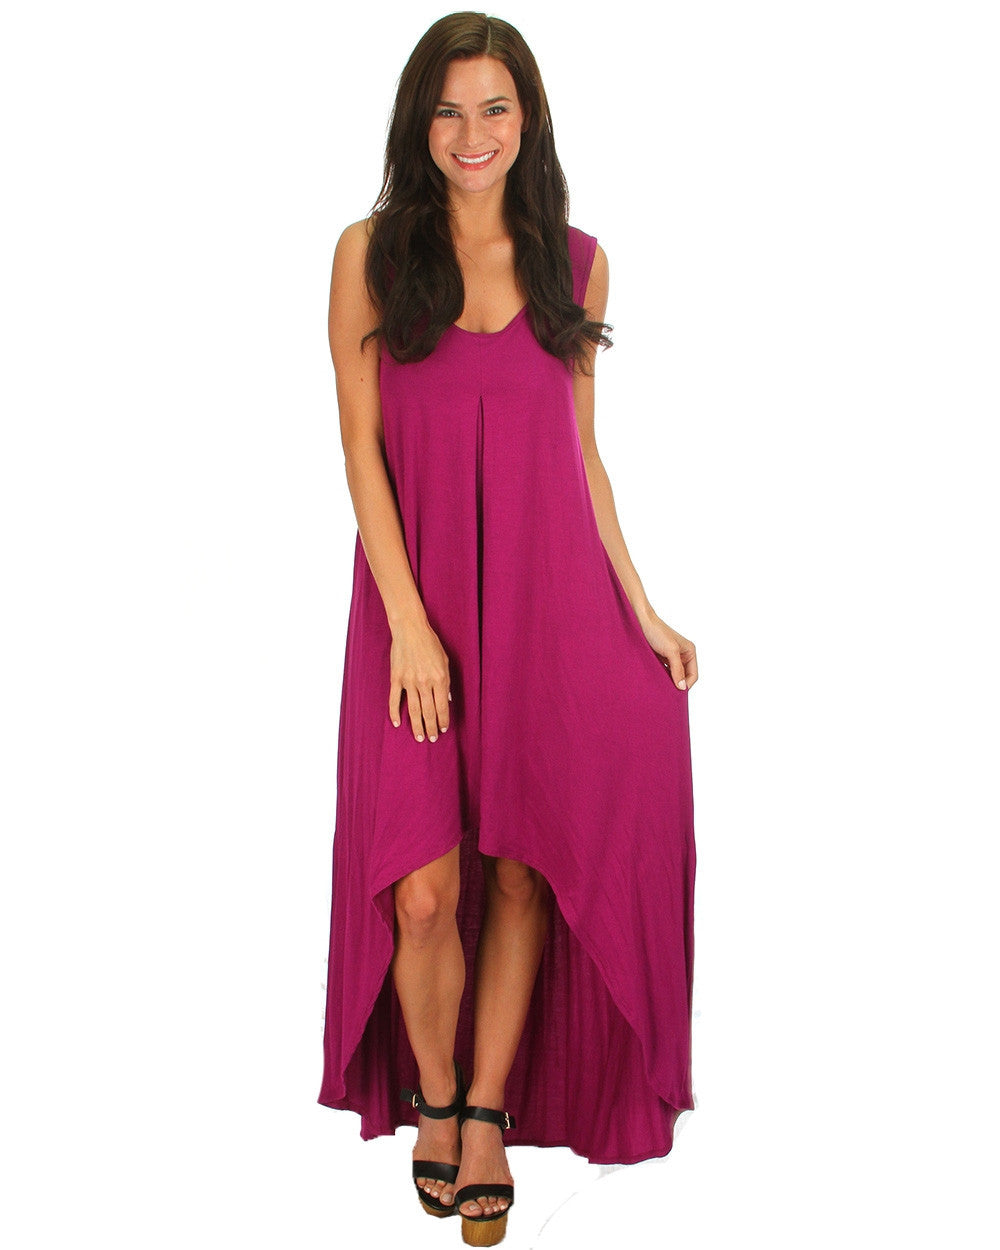 Free Style Hi-Low Maxi Dress In Magenta